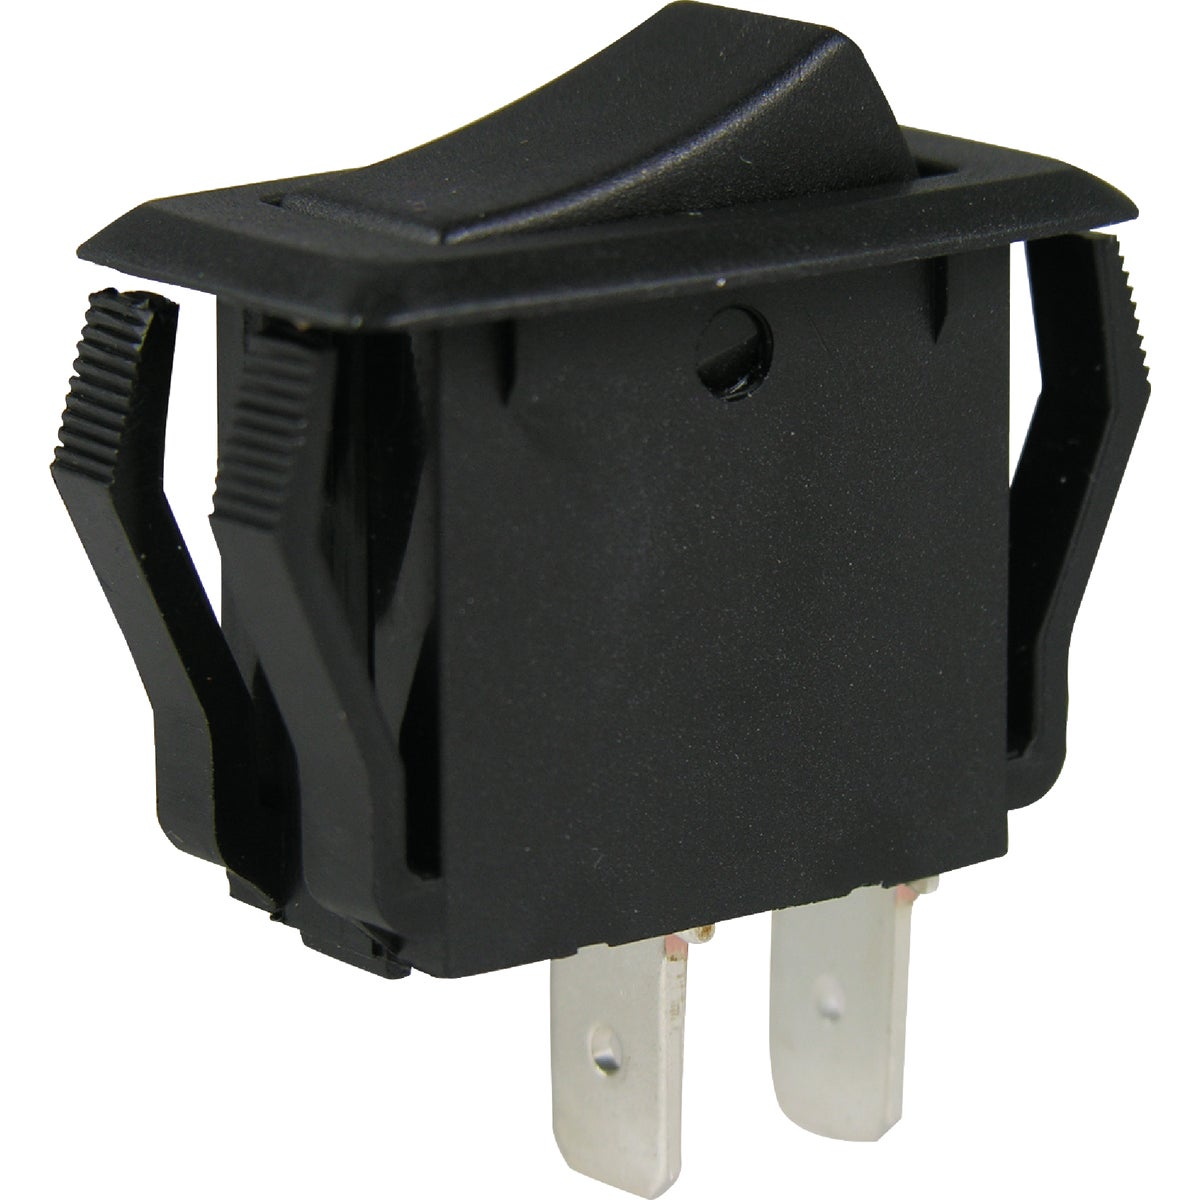 MED DUTY ROCKER SWITCH - GSW-41 by G B Electrical Inc